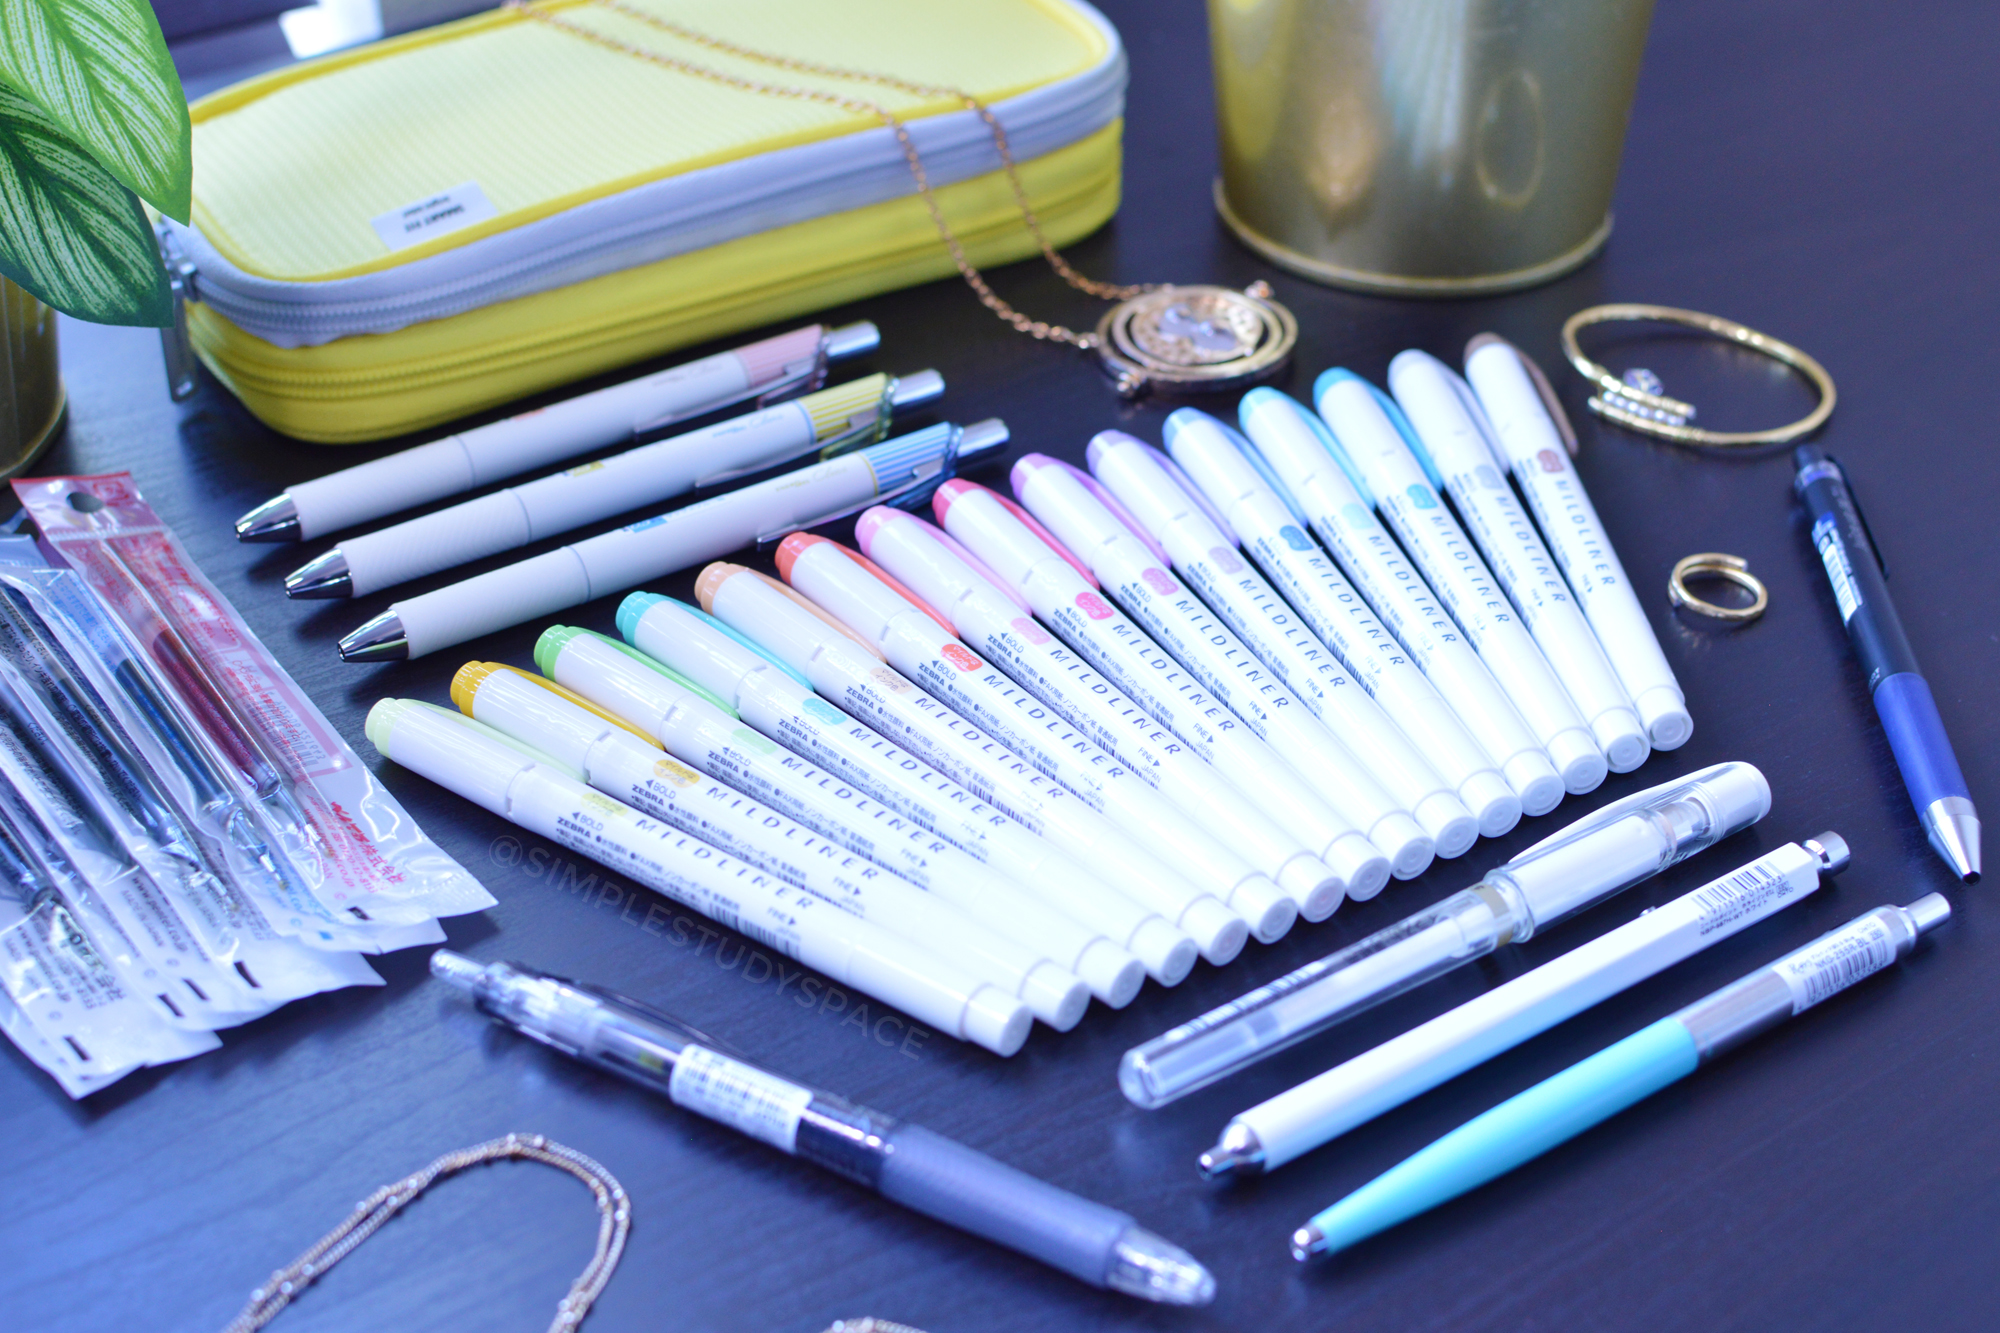 Pens and markers from JetPens.